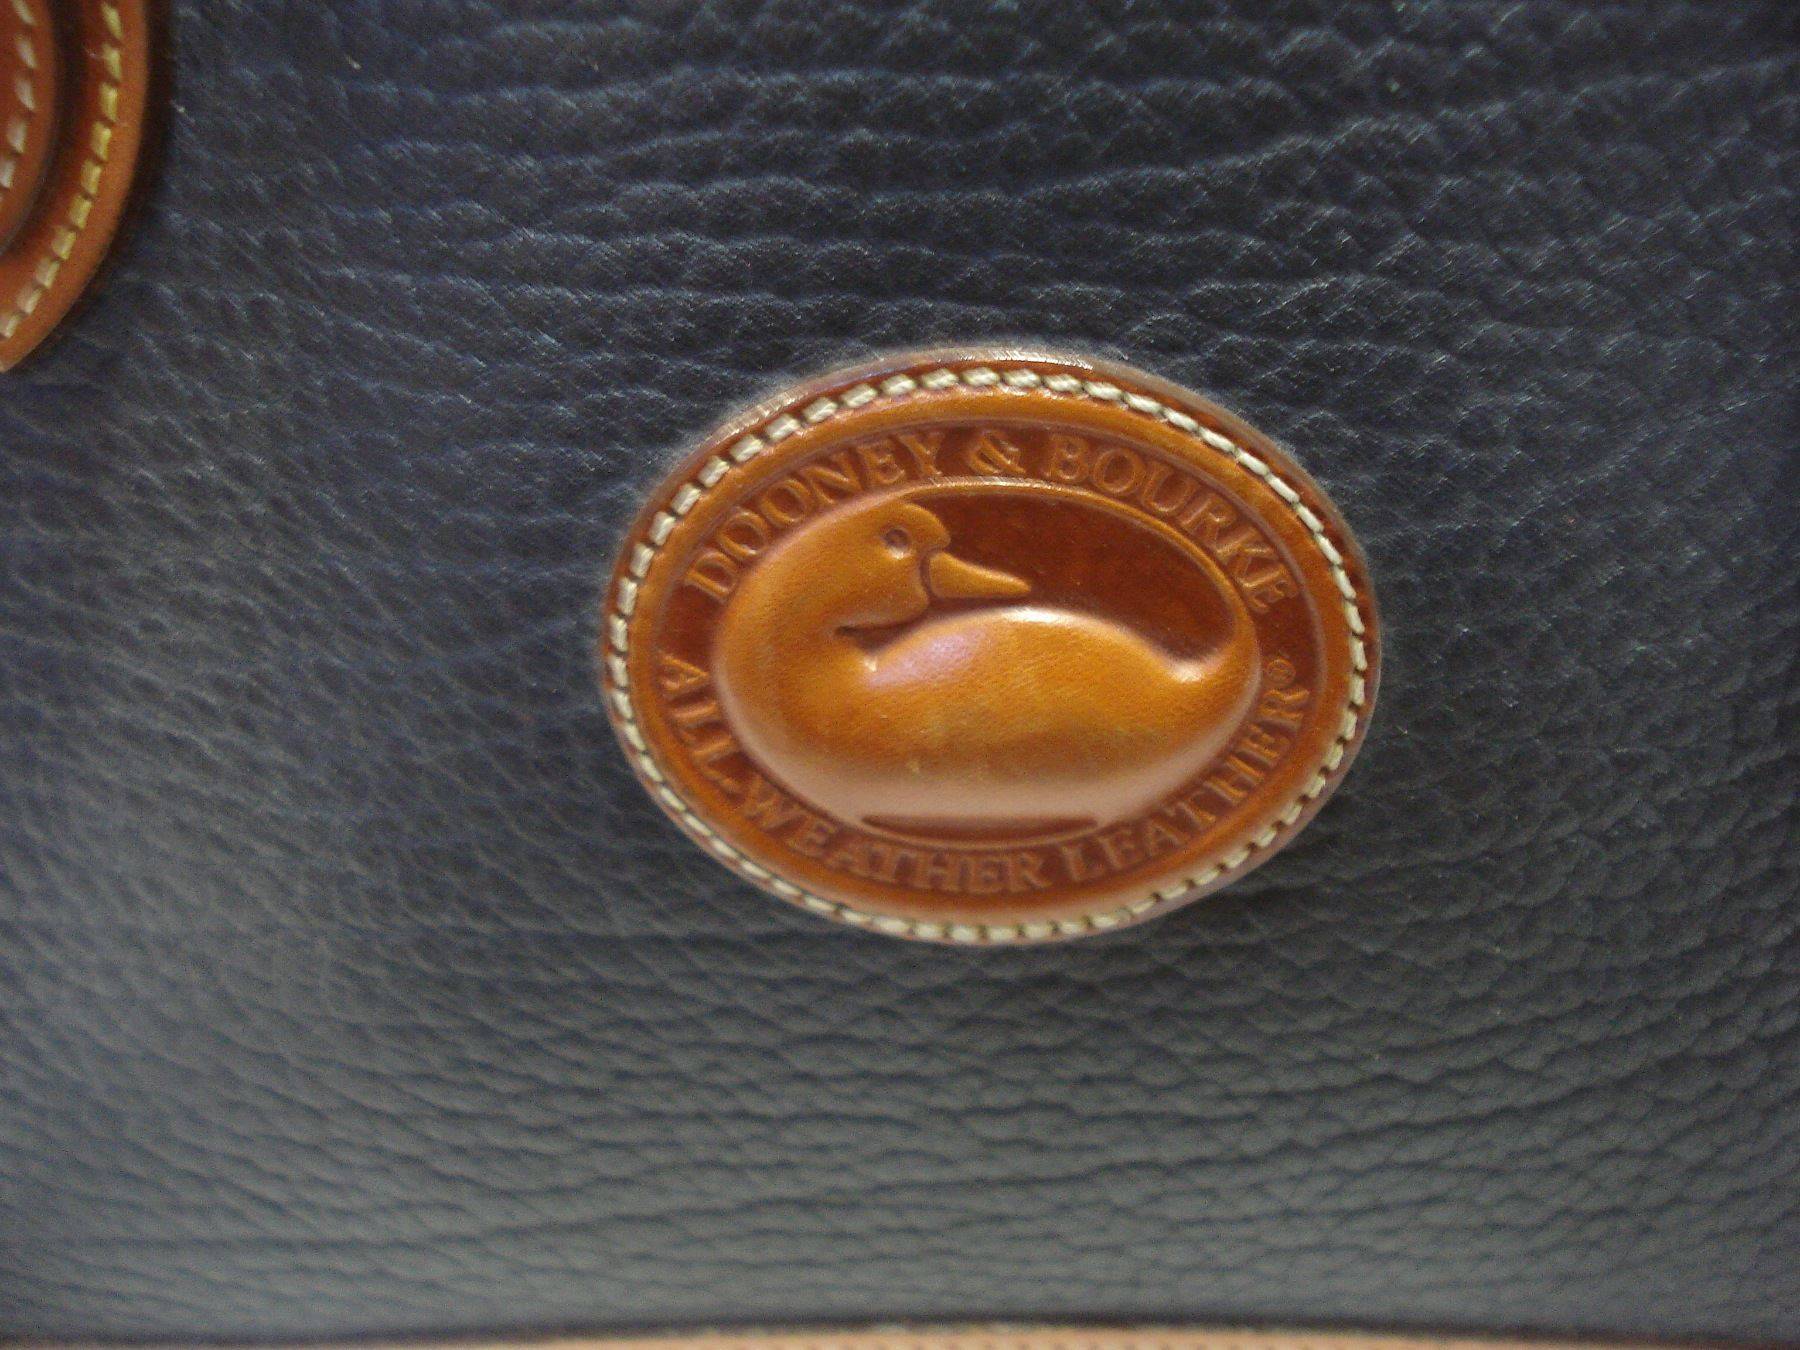 dooney and bourke serial number starting with a